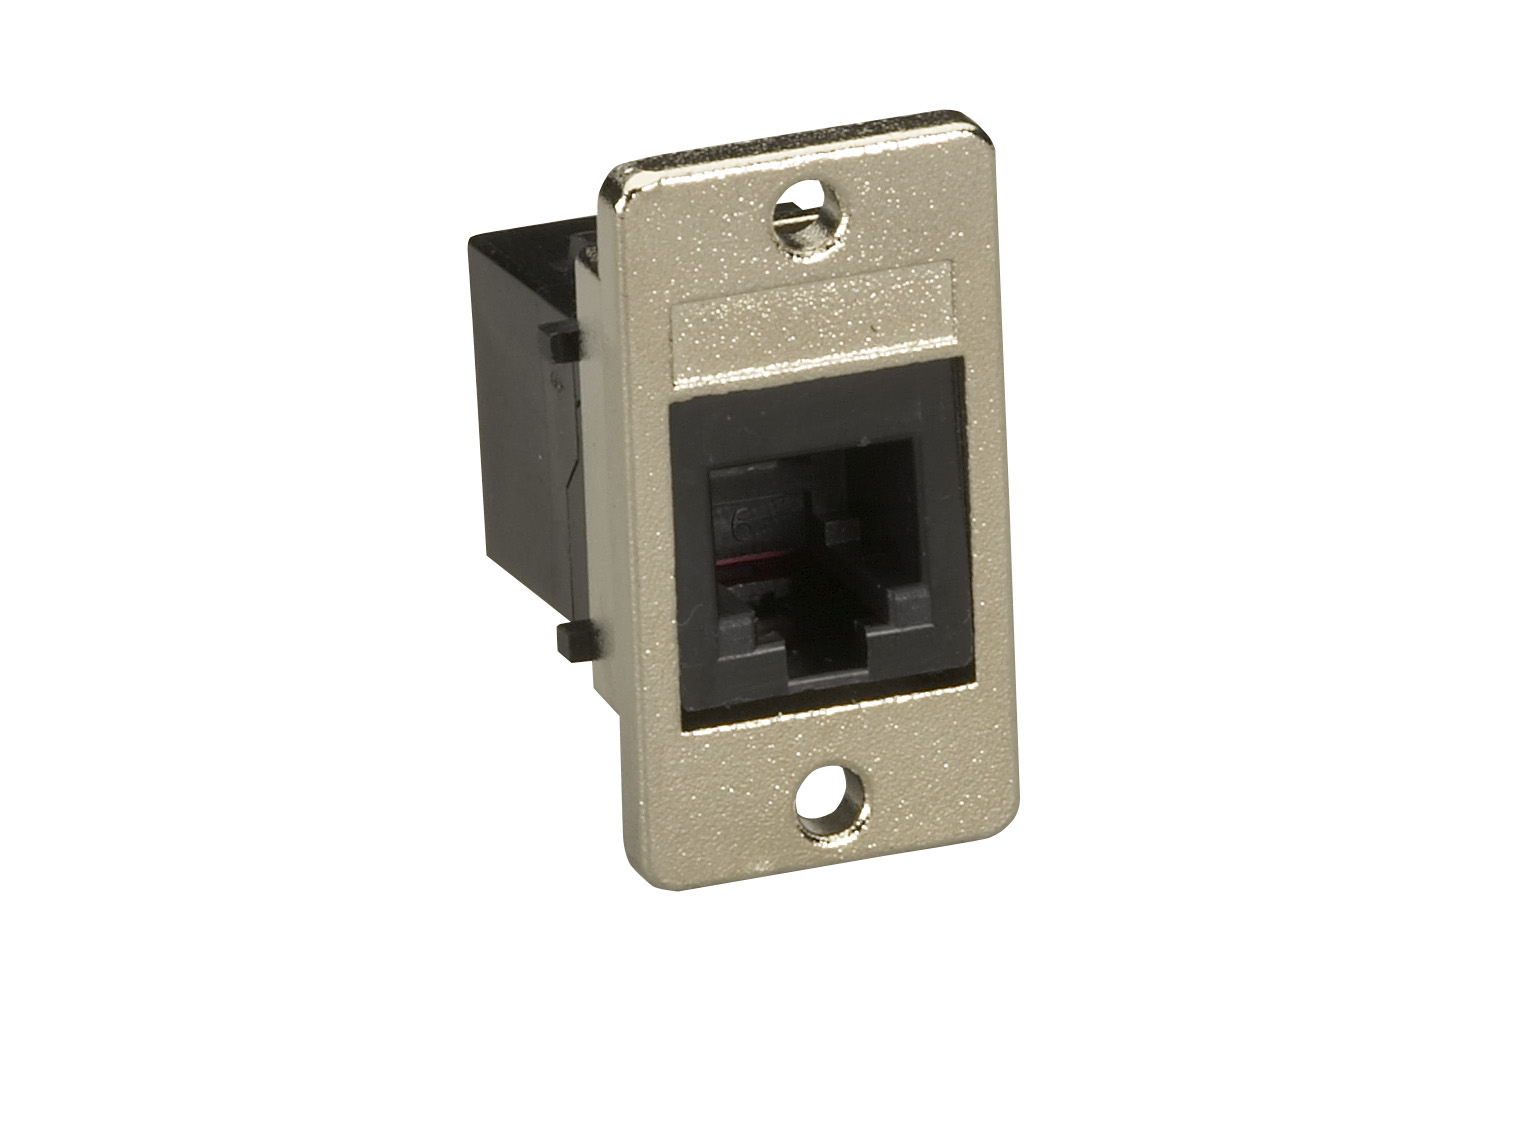 Black Panel Mount Unshielded Coupler Rj11 4 Wire Box Surface Ethernet Wall Jack Wiring Additional Product Image